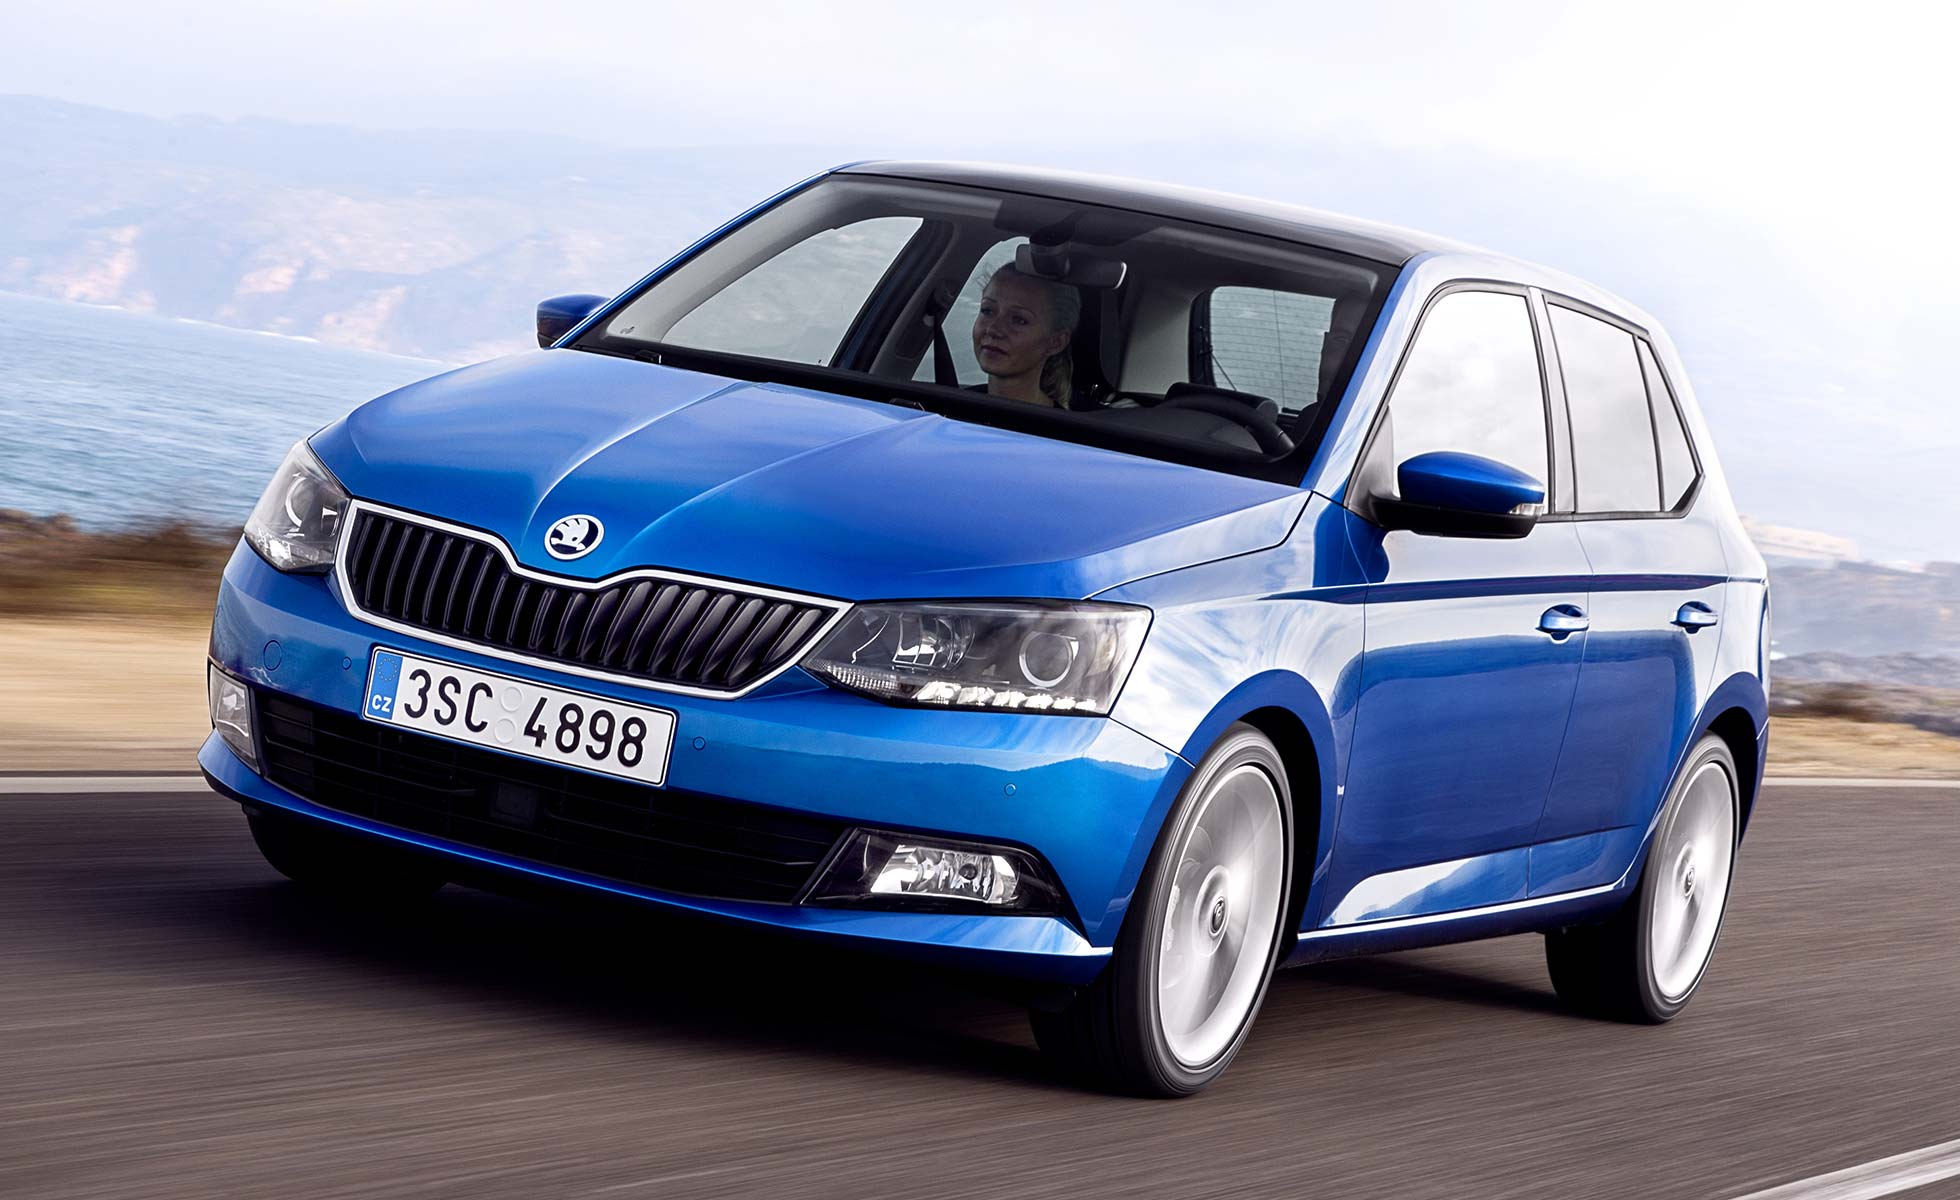 skoda fabia review 2015 first drive motoring research. Black Bedroom Furniture Sets. Home Design Ideas